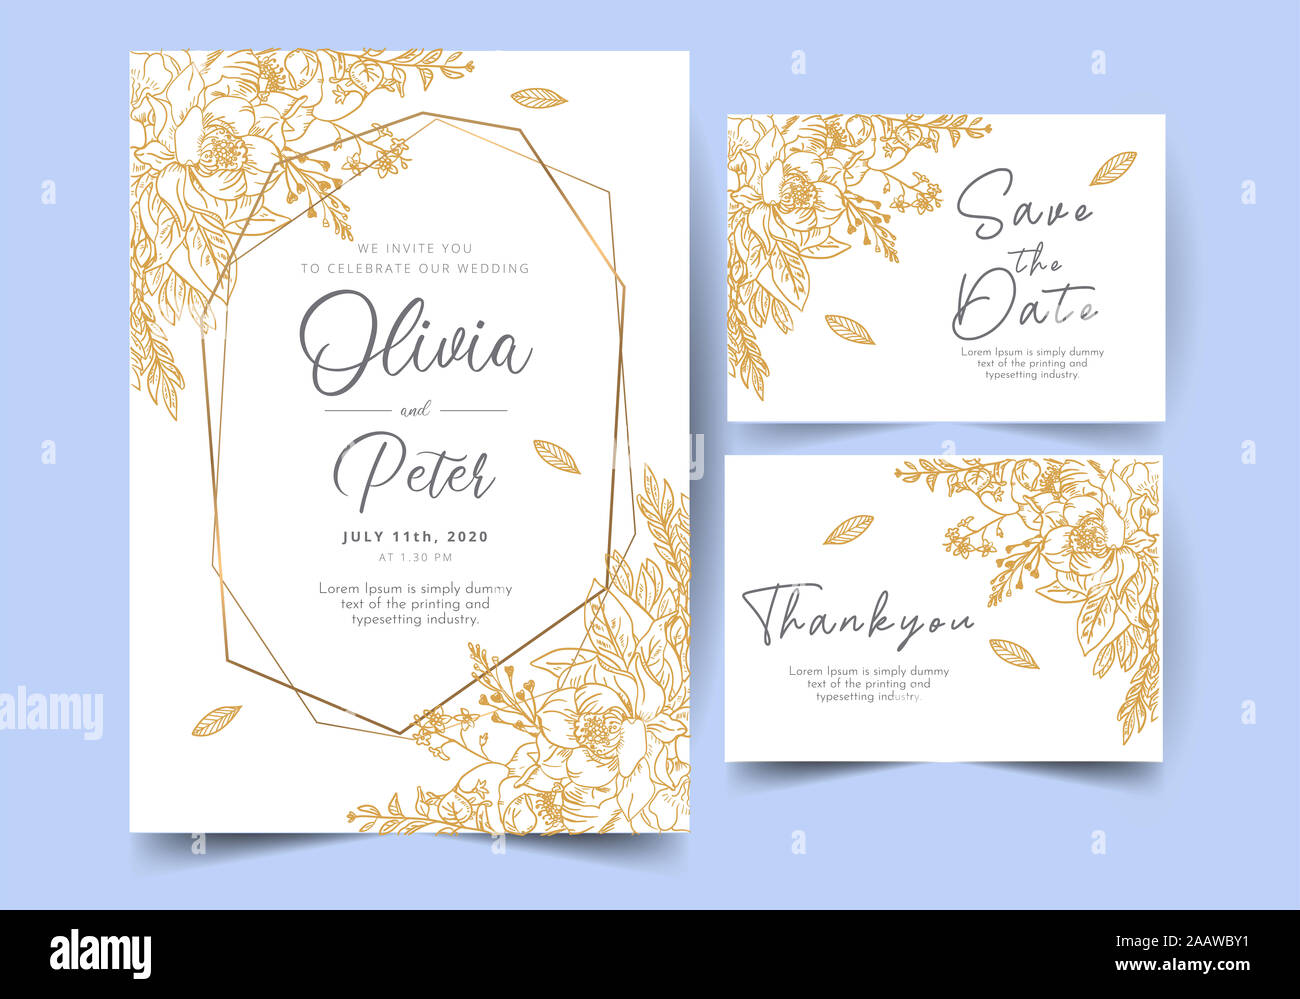 wedding invitation card template with golden flower floral